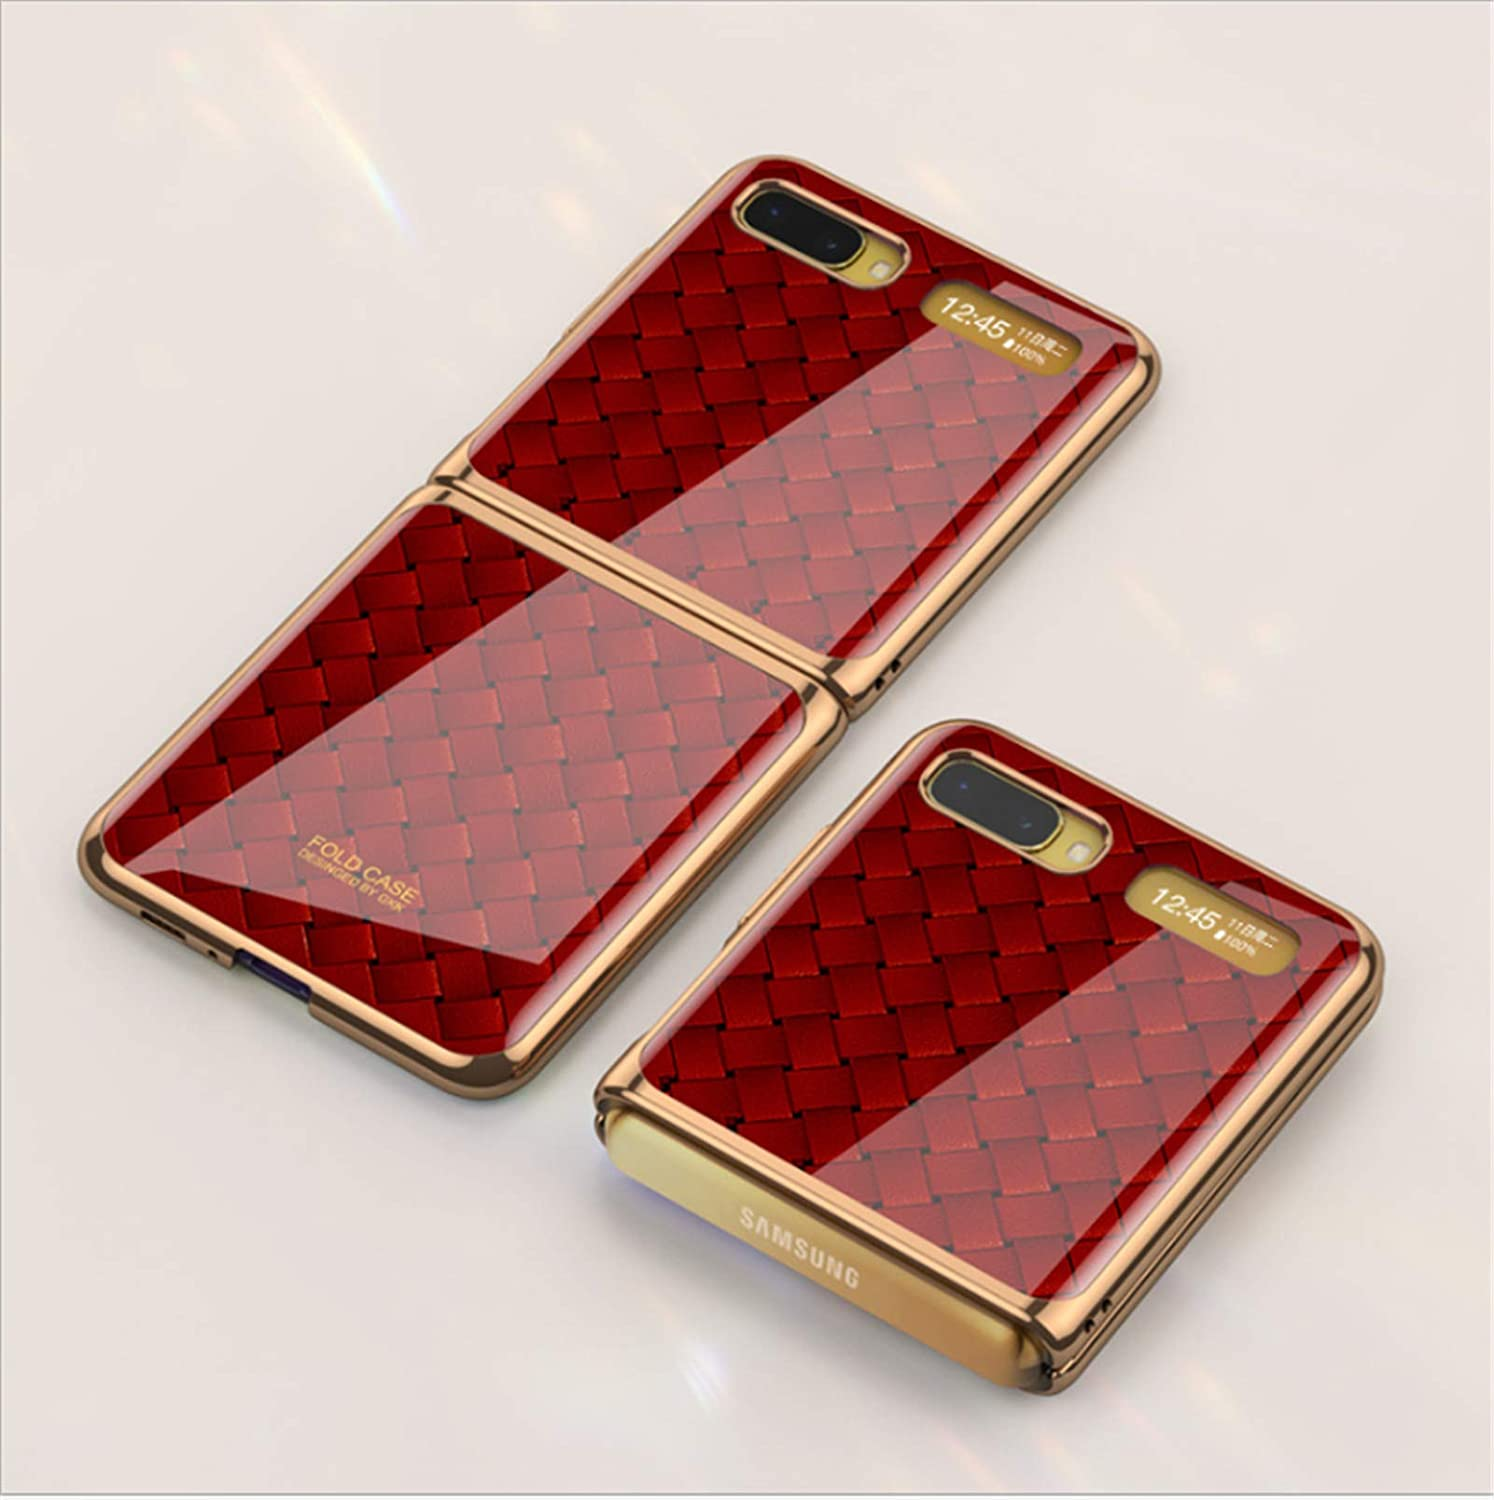 Luxury Tempered Glass Phone Case Protective Skin for Samsung Galaxy Z Flip 5G 2020 Fashion Electroplated PC Back Cover (Red Weave)…